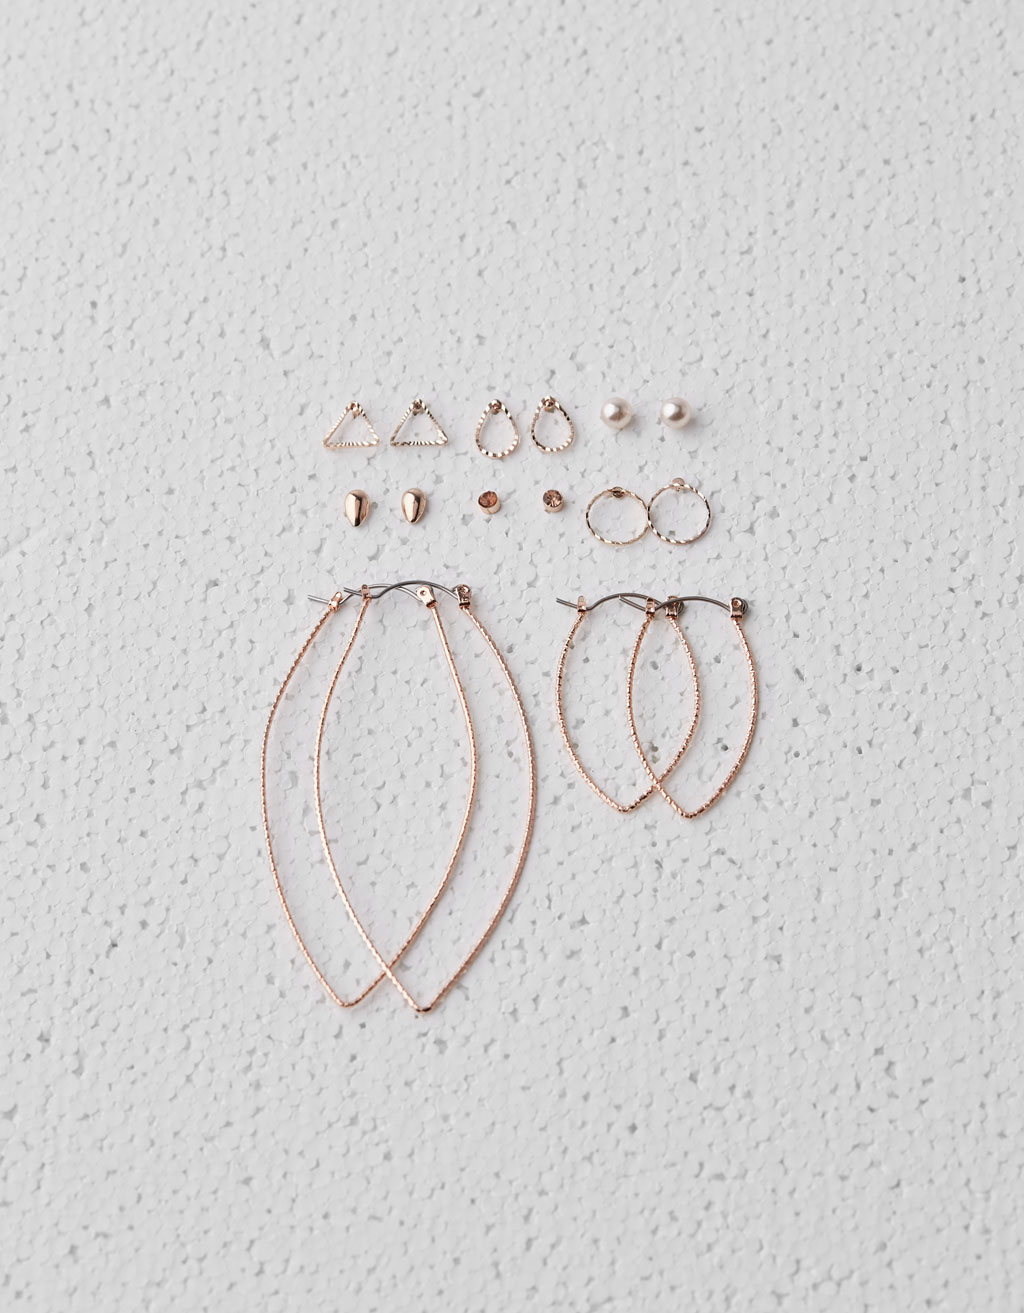 Pack of mismatched earrings